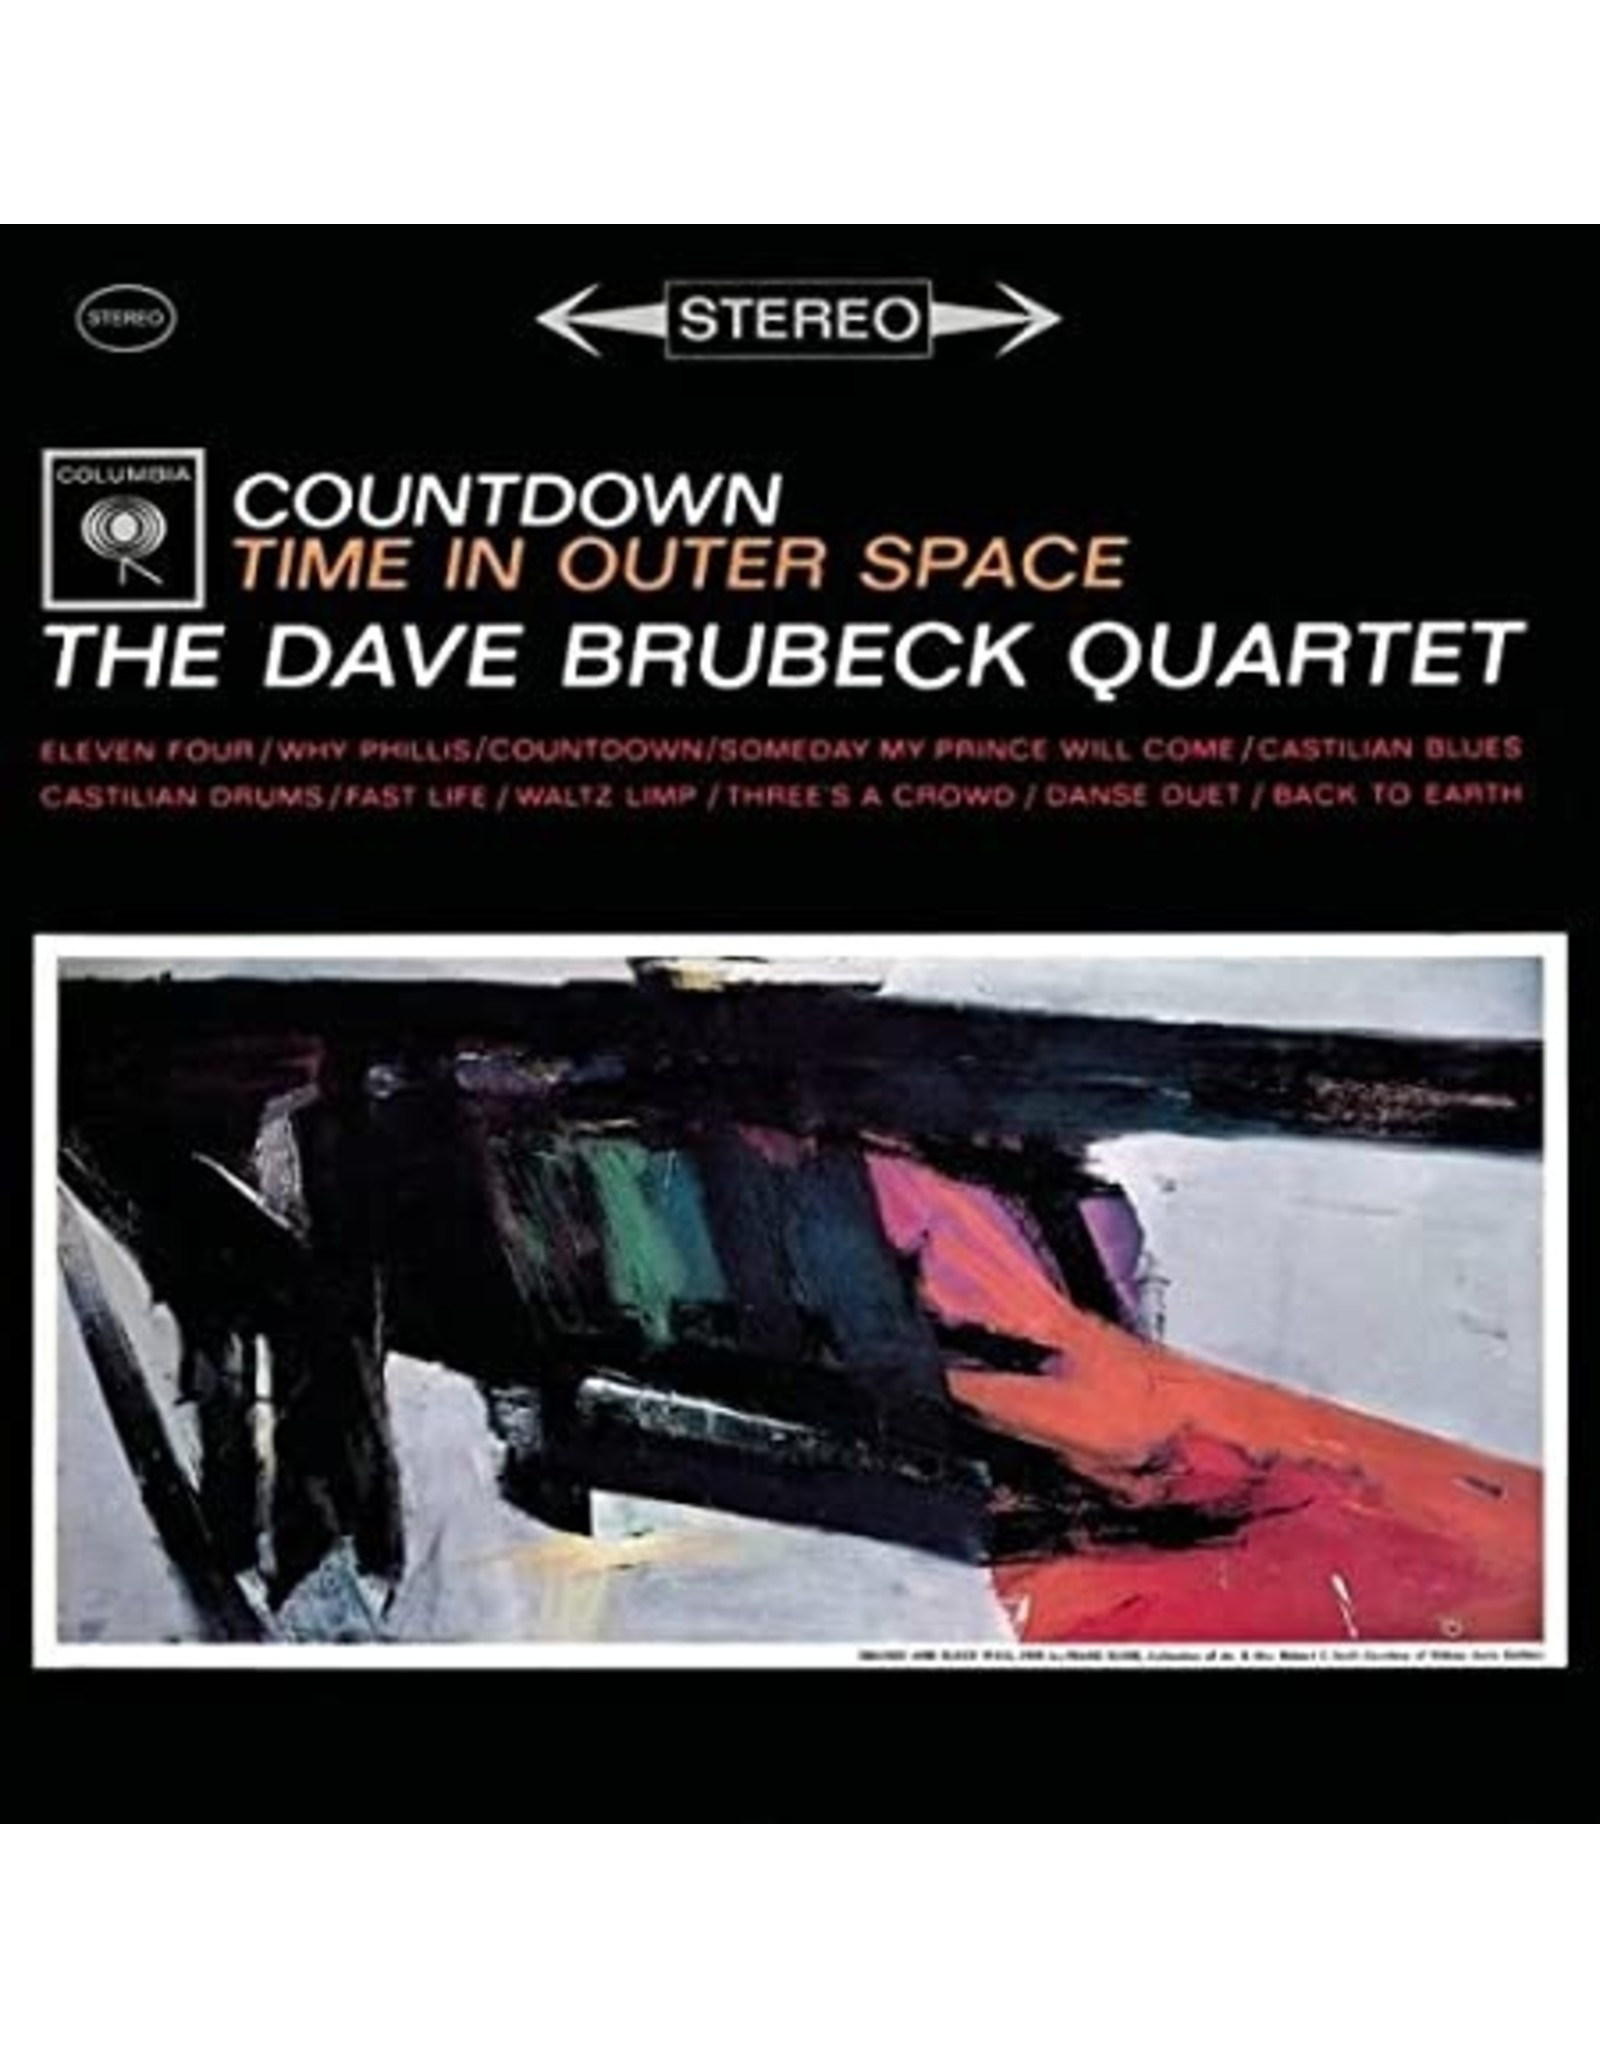 New Vinyl The Dave Brubeck Quartet - Countdown Time In Outer Space LP